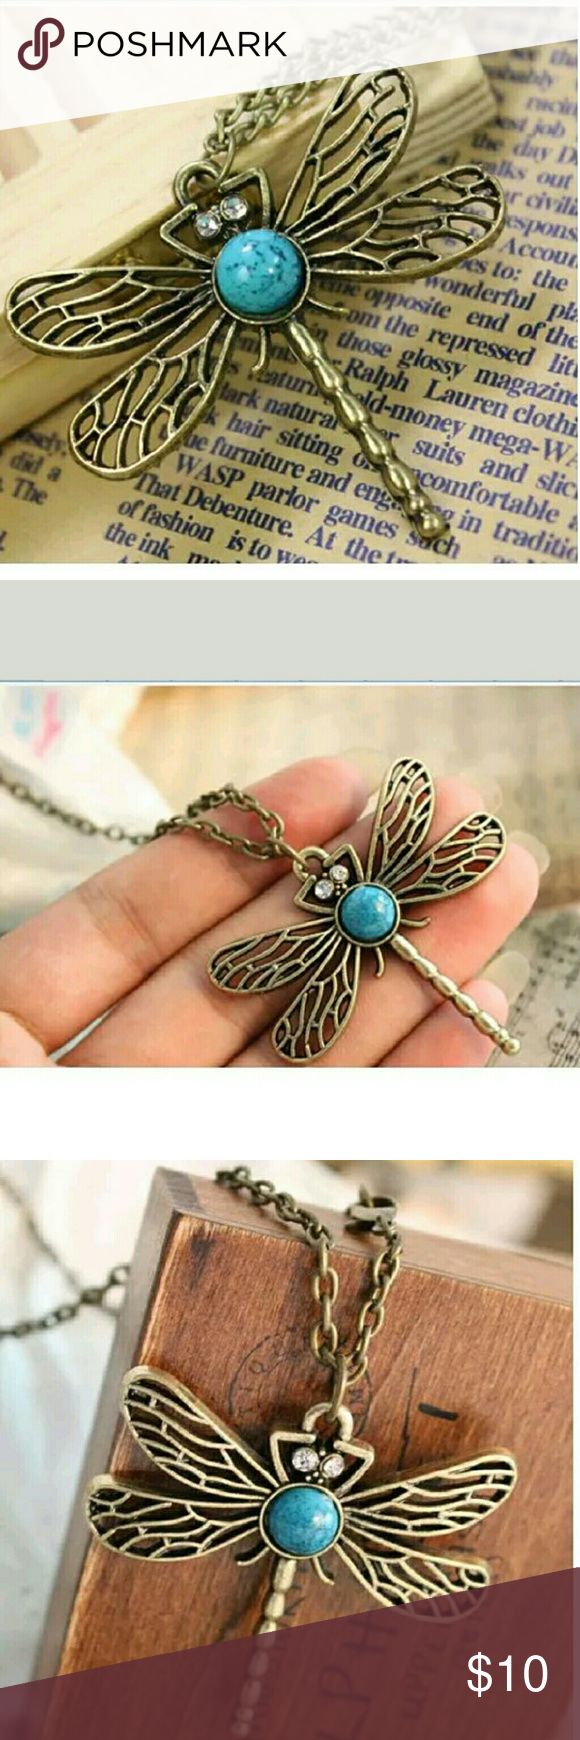 Dragonfly with Turquoise and Rhinestone Necklace Beautiful Dragonfly with Turquoise and Rhinestone Necklace Jewelry Necklaces